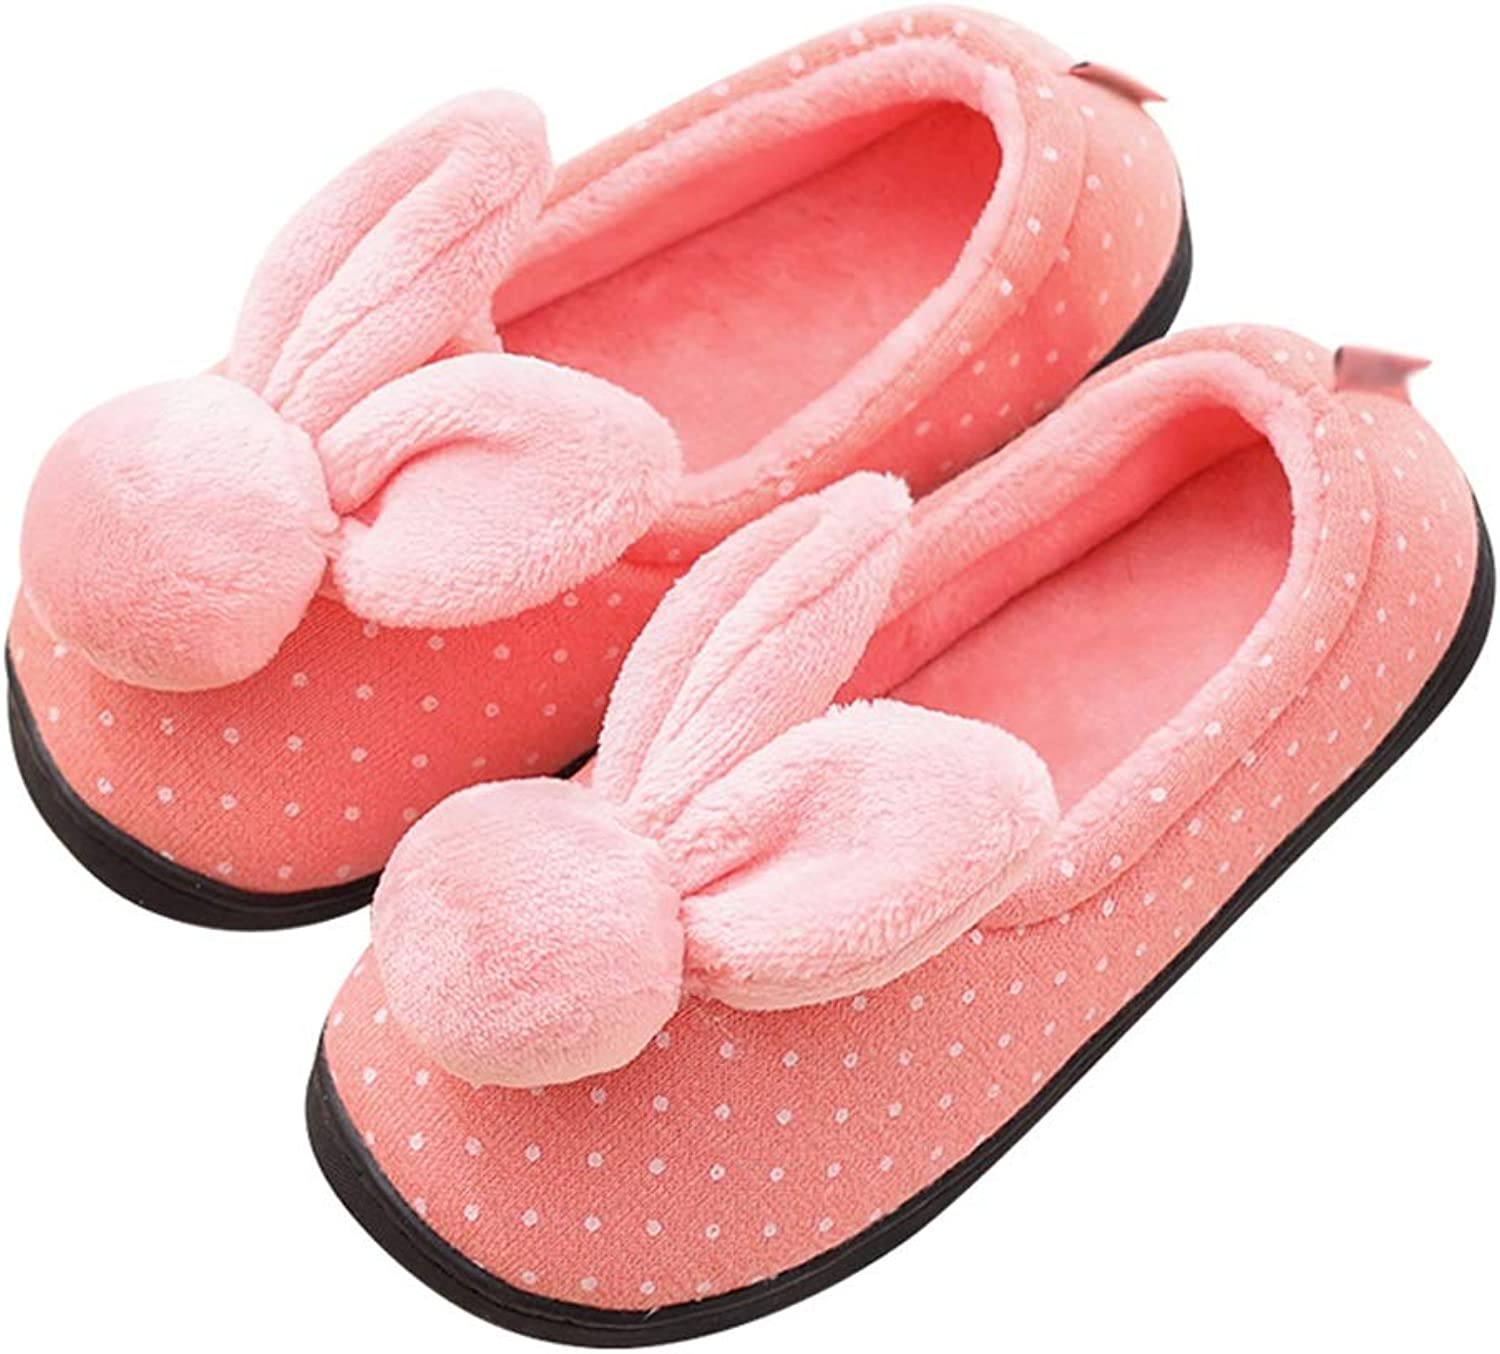 HUYP Cute Pregnant Women Cotton Slippers Women Keep Warm Non-Slip Spring and Autumn (color   Pink, Size   5.5 US)